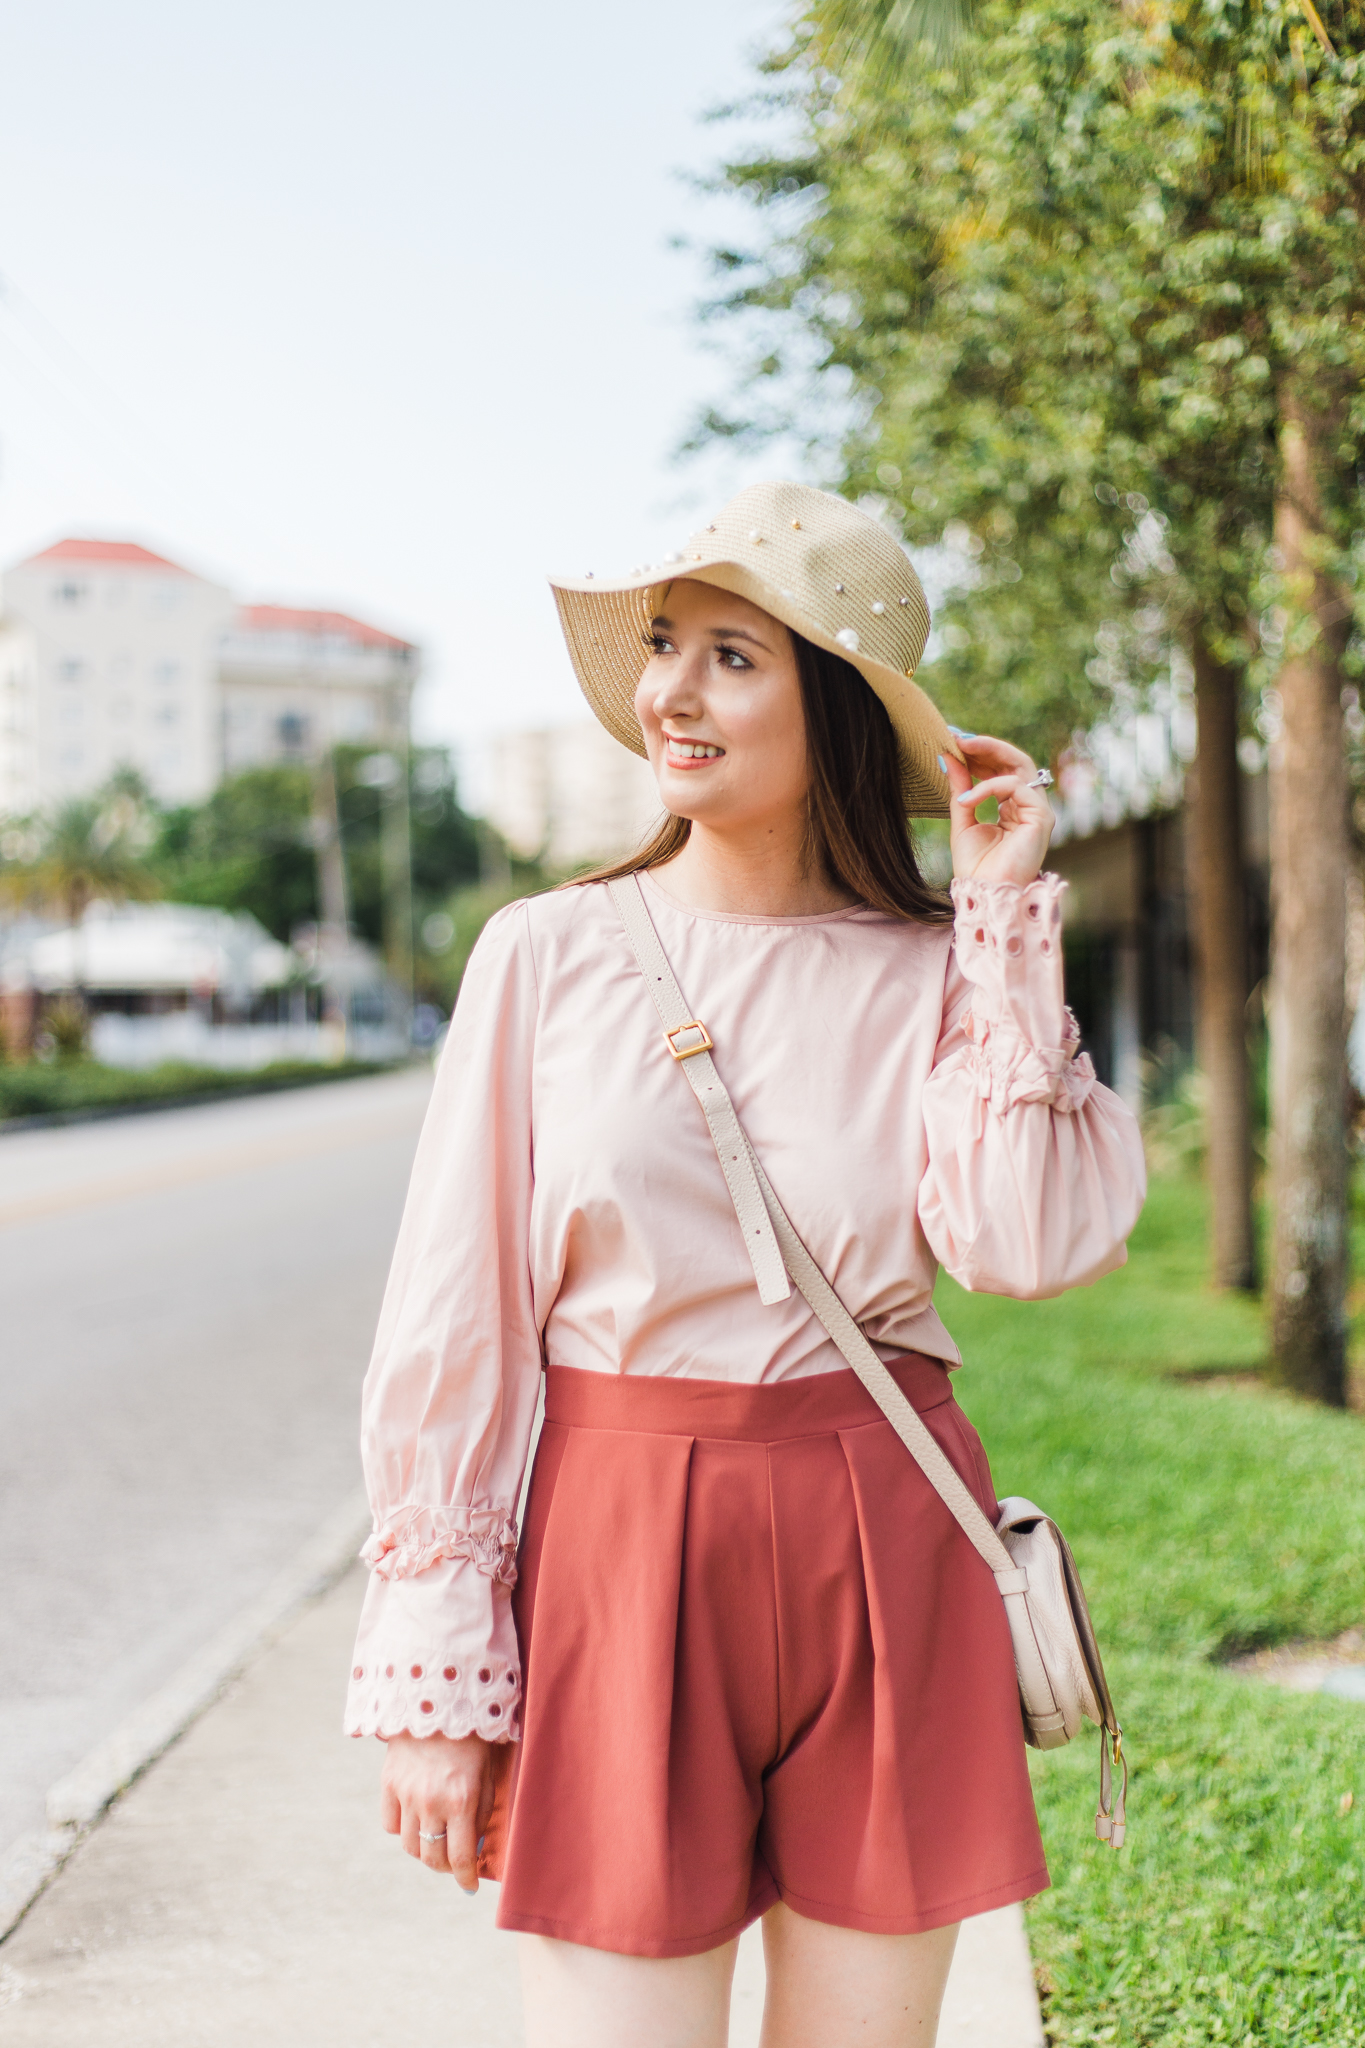 Shades of pink, pearls, and Chanel | Chanel espadrilles, pink outfit, pearl hat, Chanel, chanel pink espadrilles, pearl trend, Chloe marcie mini, pink shorts, eyelet